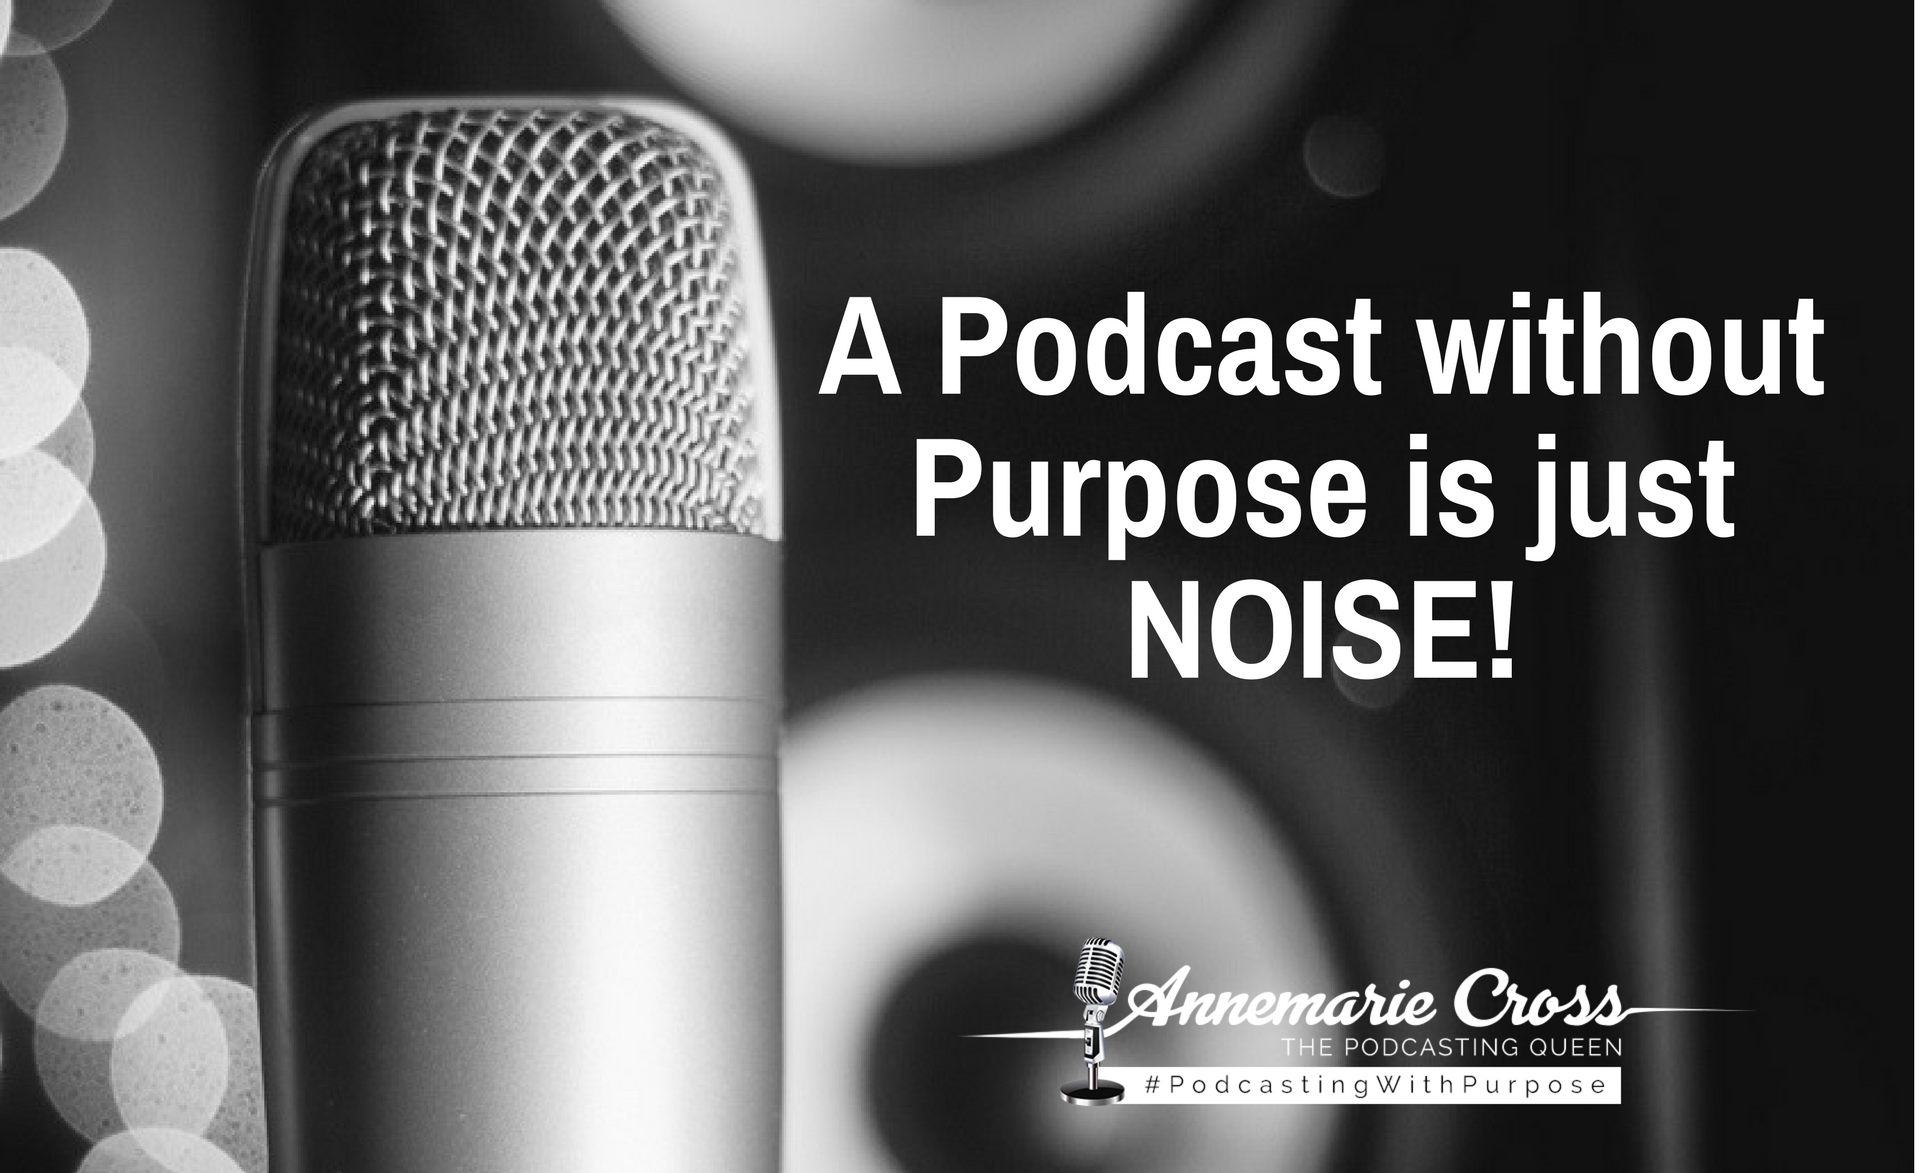 A Podcast Without Purpose is JUST Noise